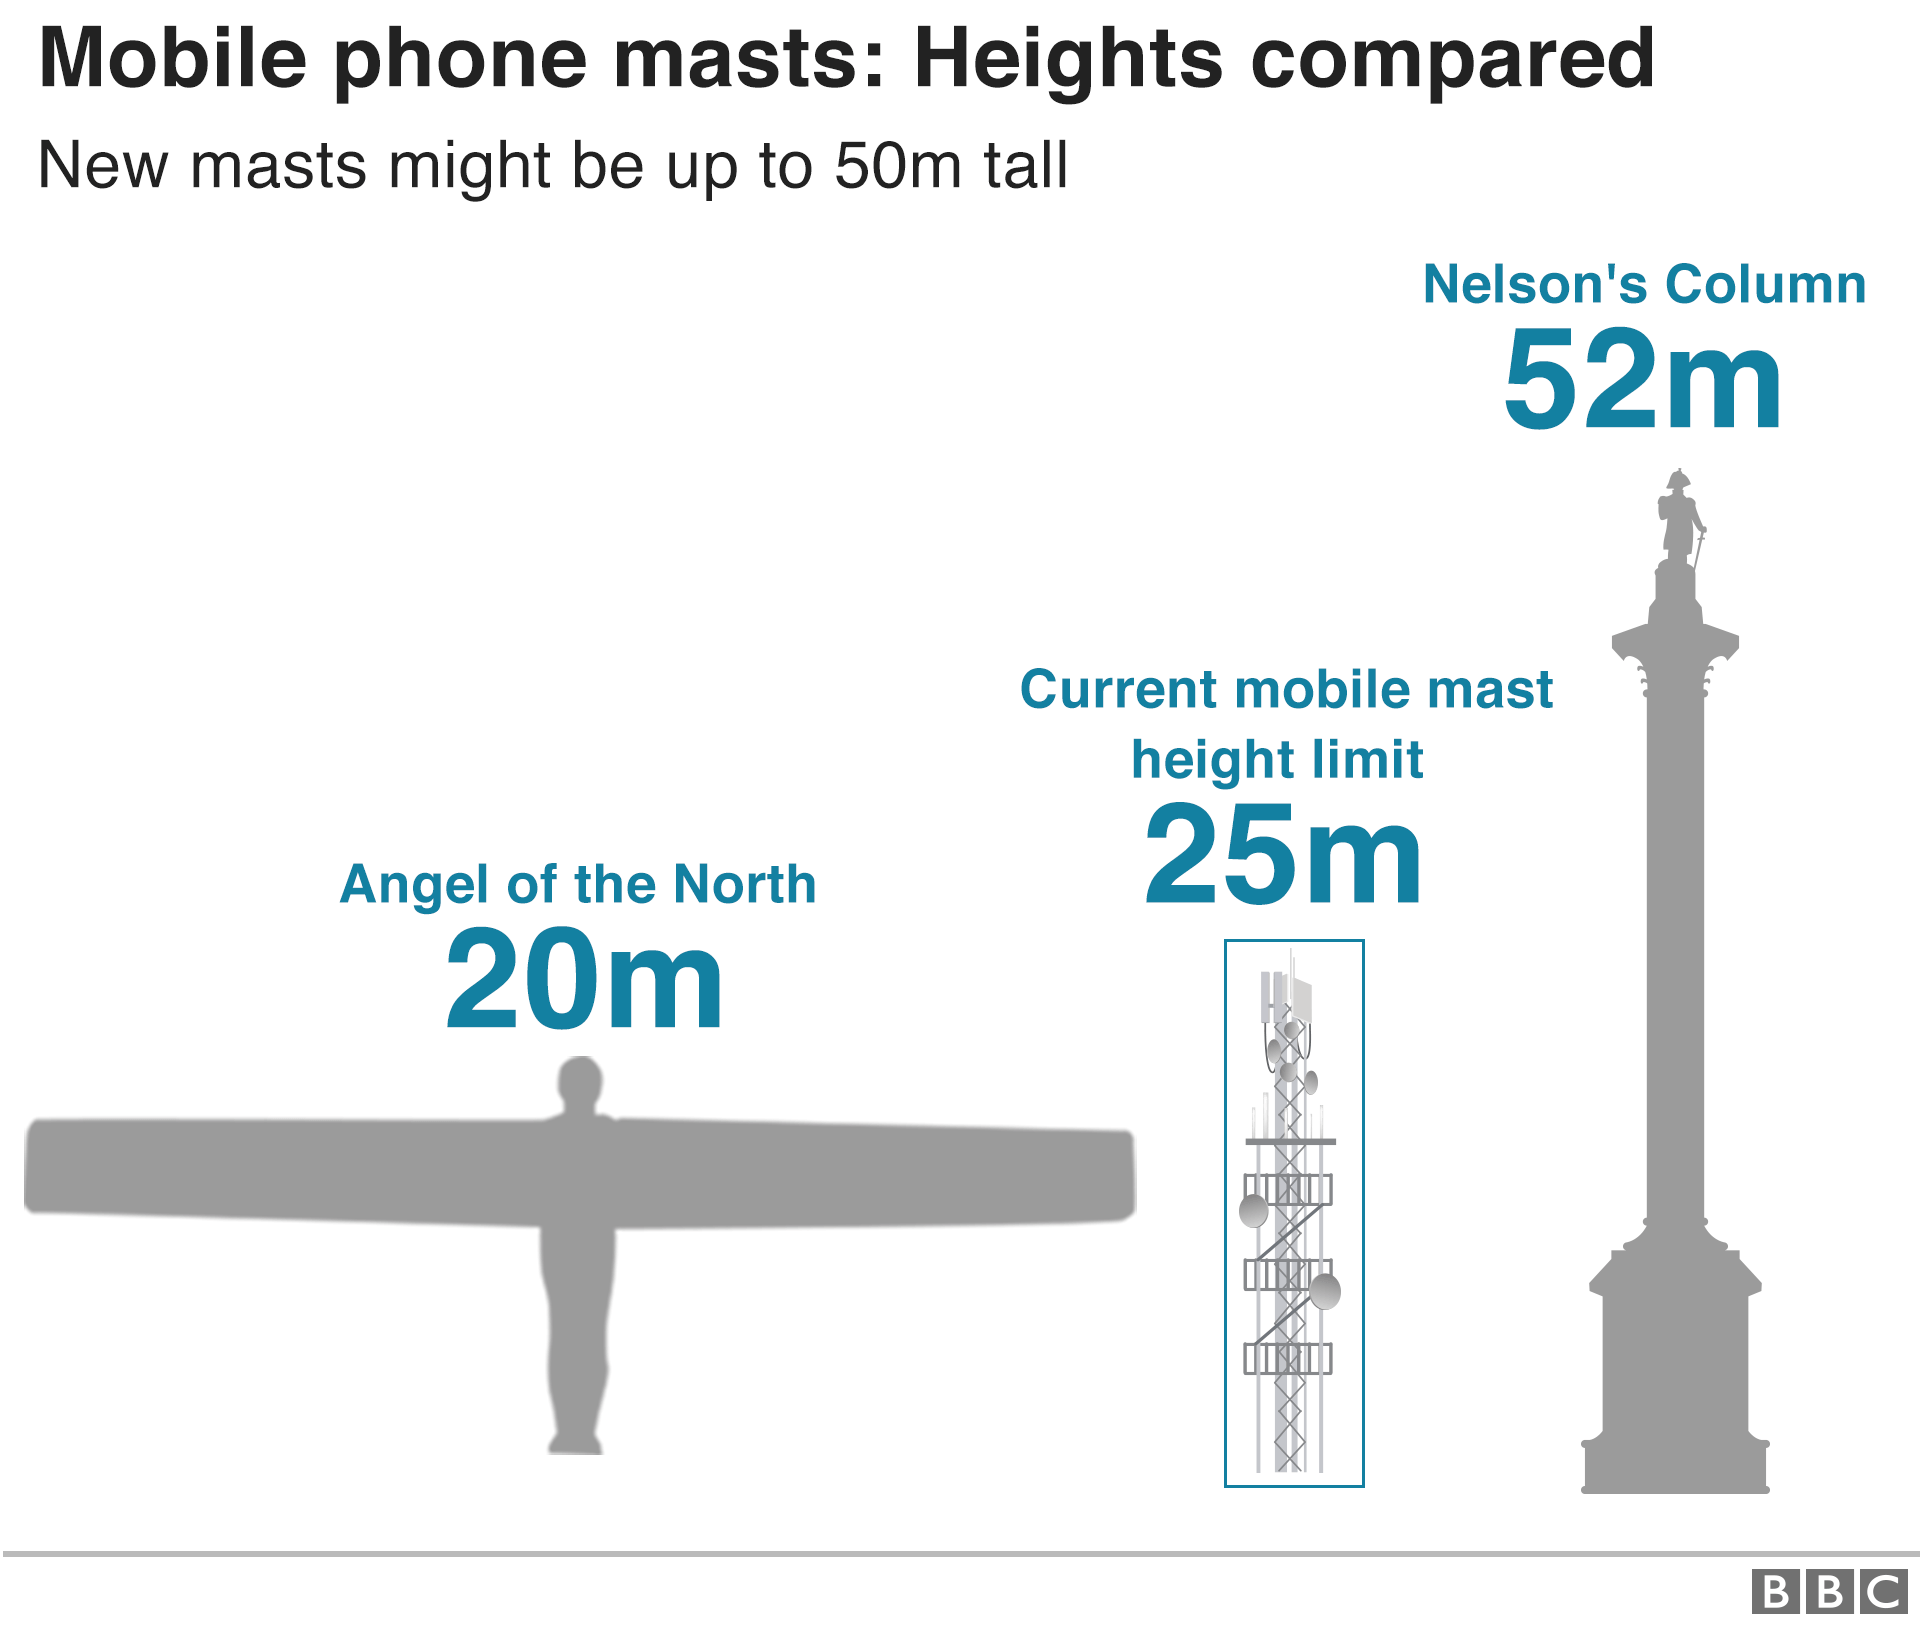 Mobile phone masts heights compared